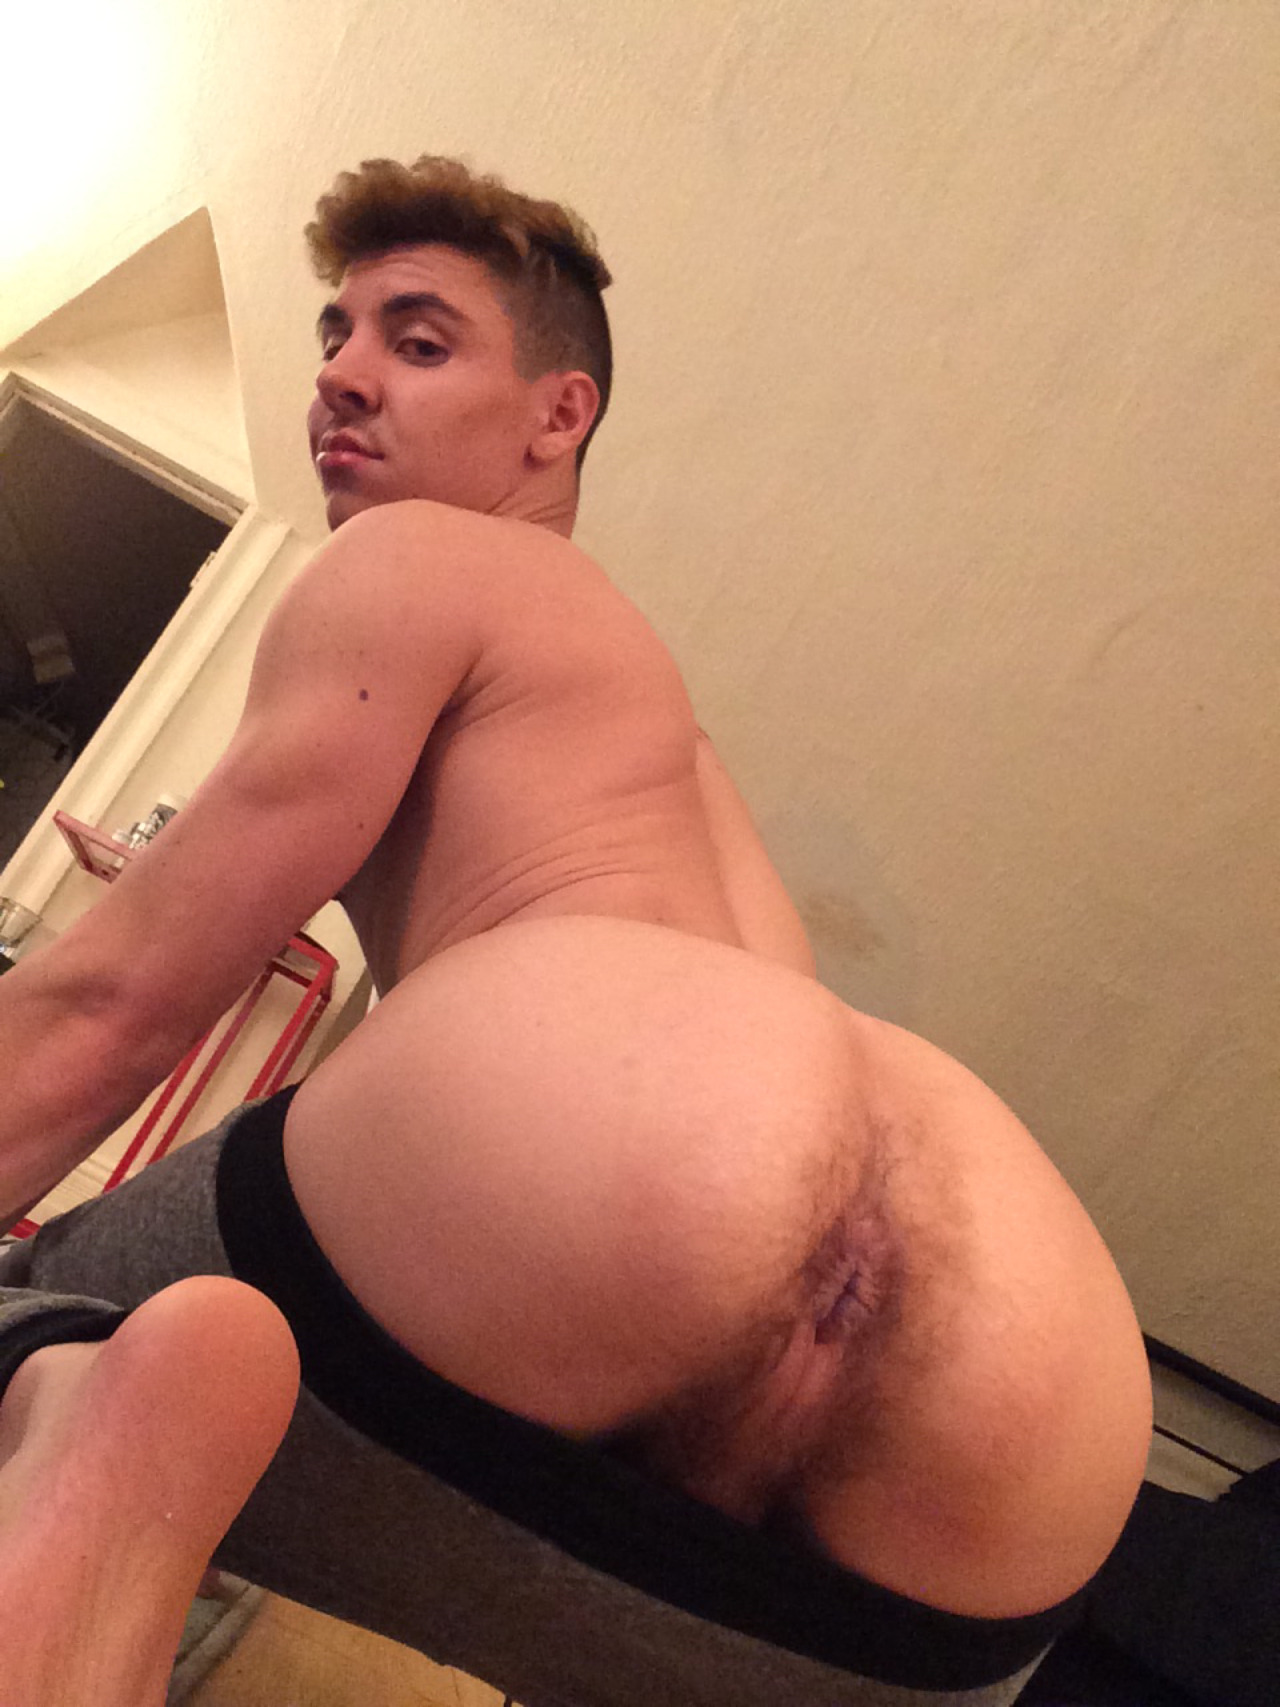 Latino Mates Butt Penetration Cumming